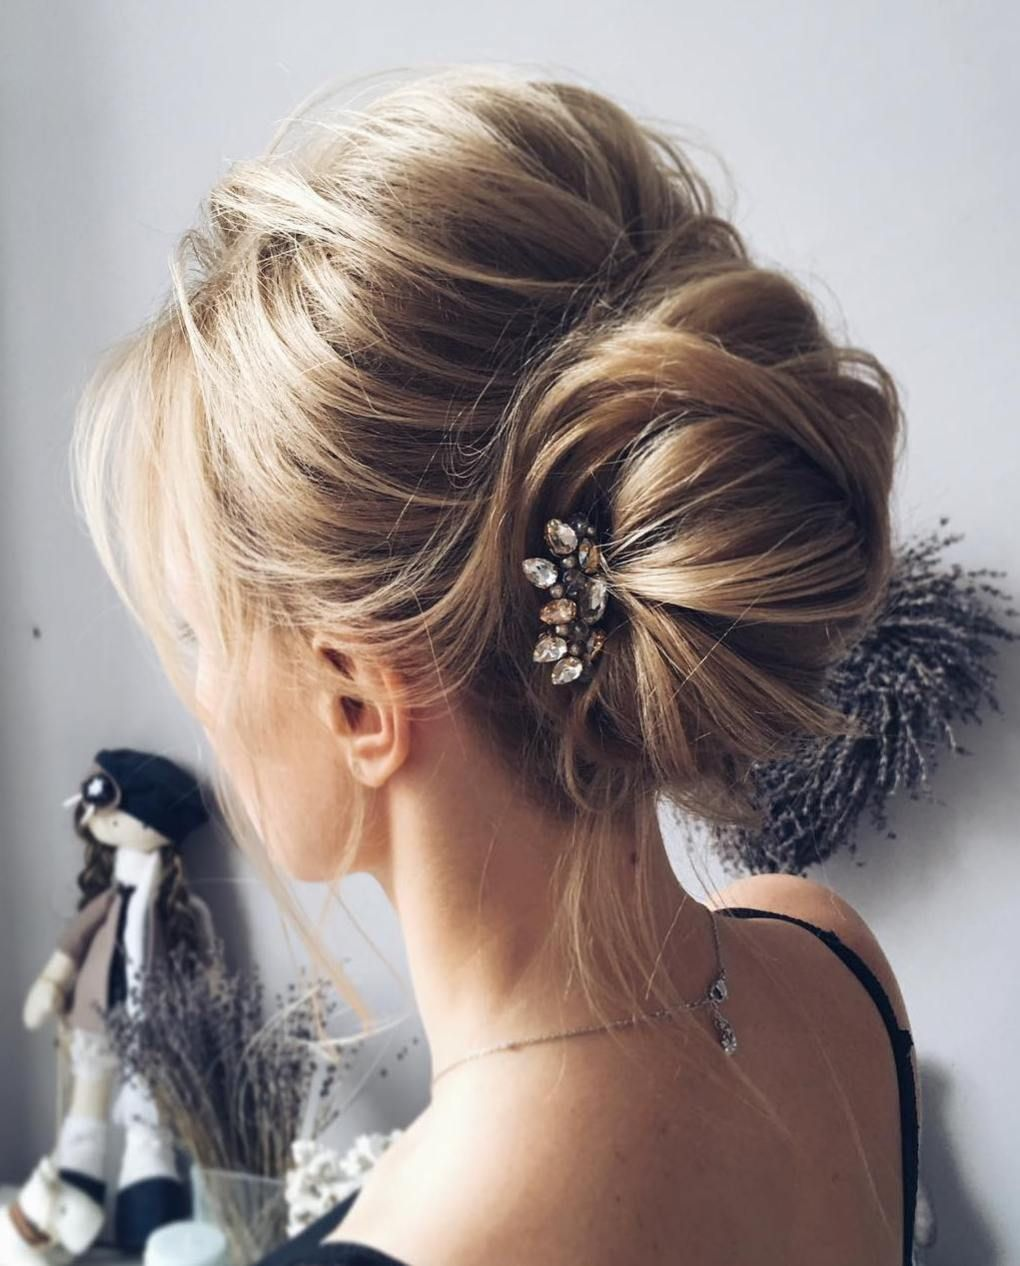 60 updos for thin hair that score maximum style point | messy buns